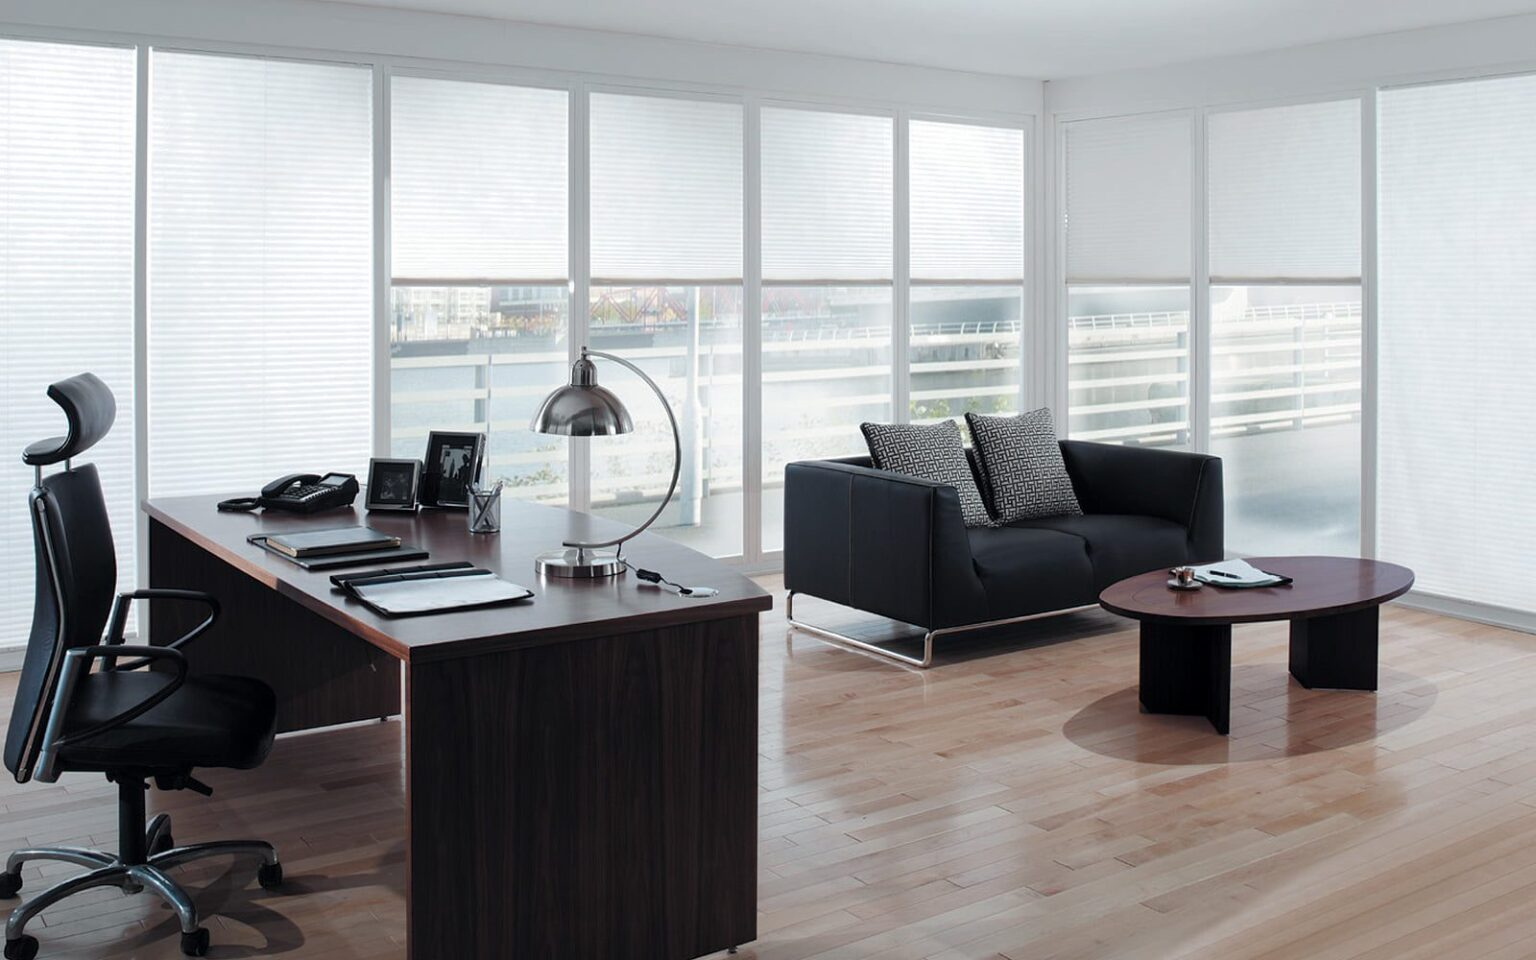 Roller Blinds in an office